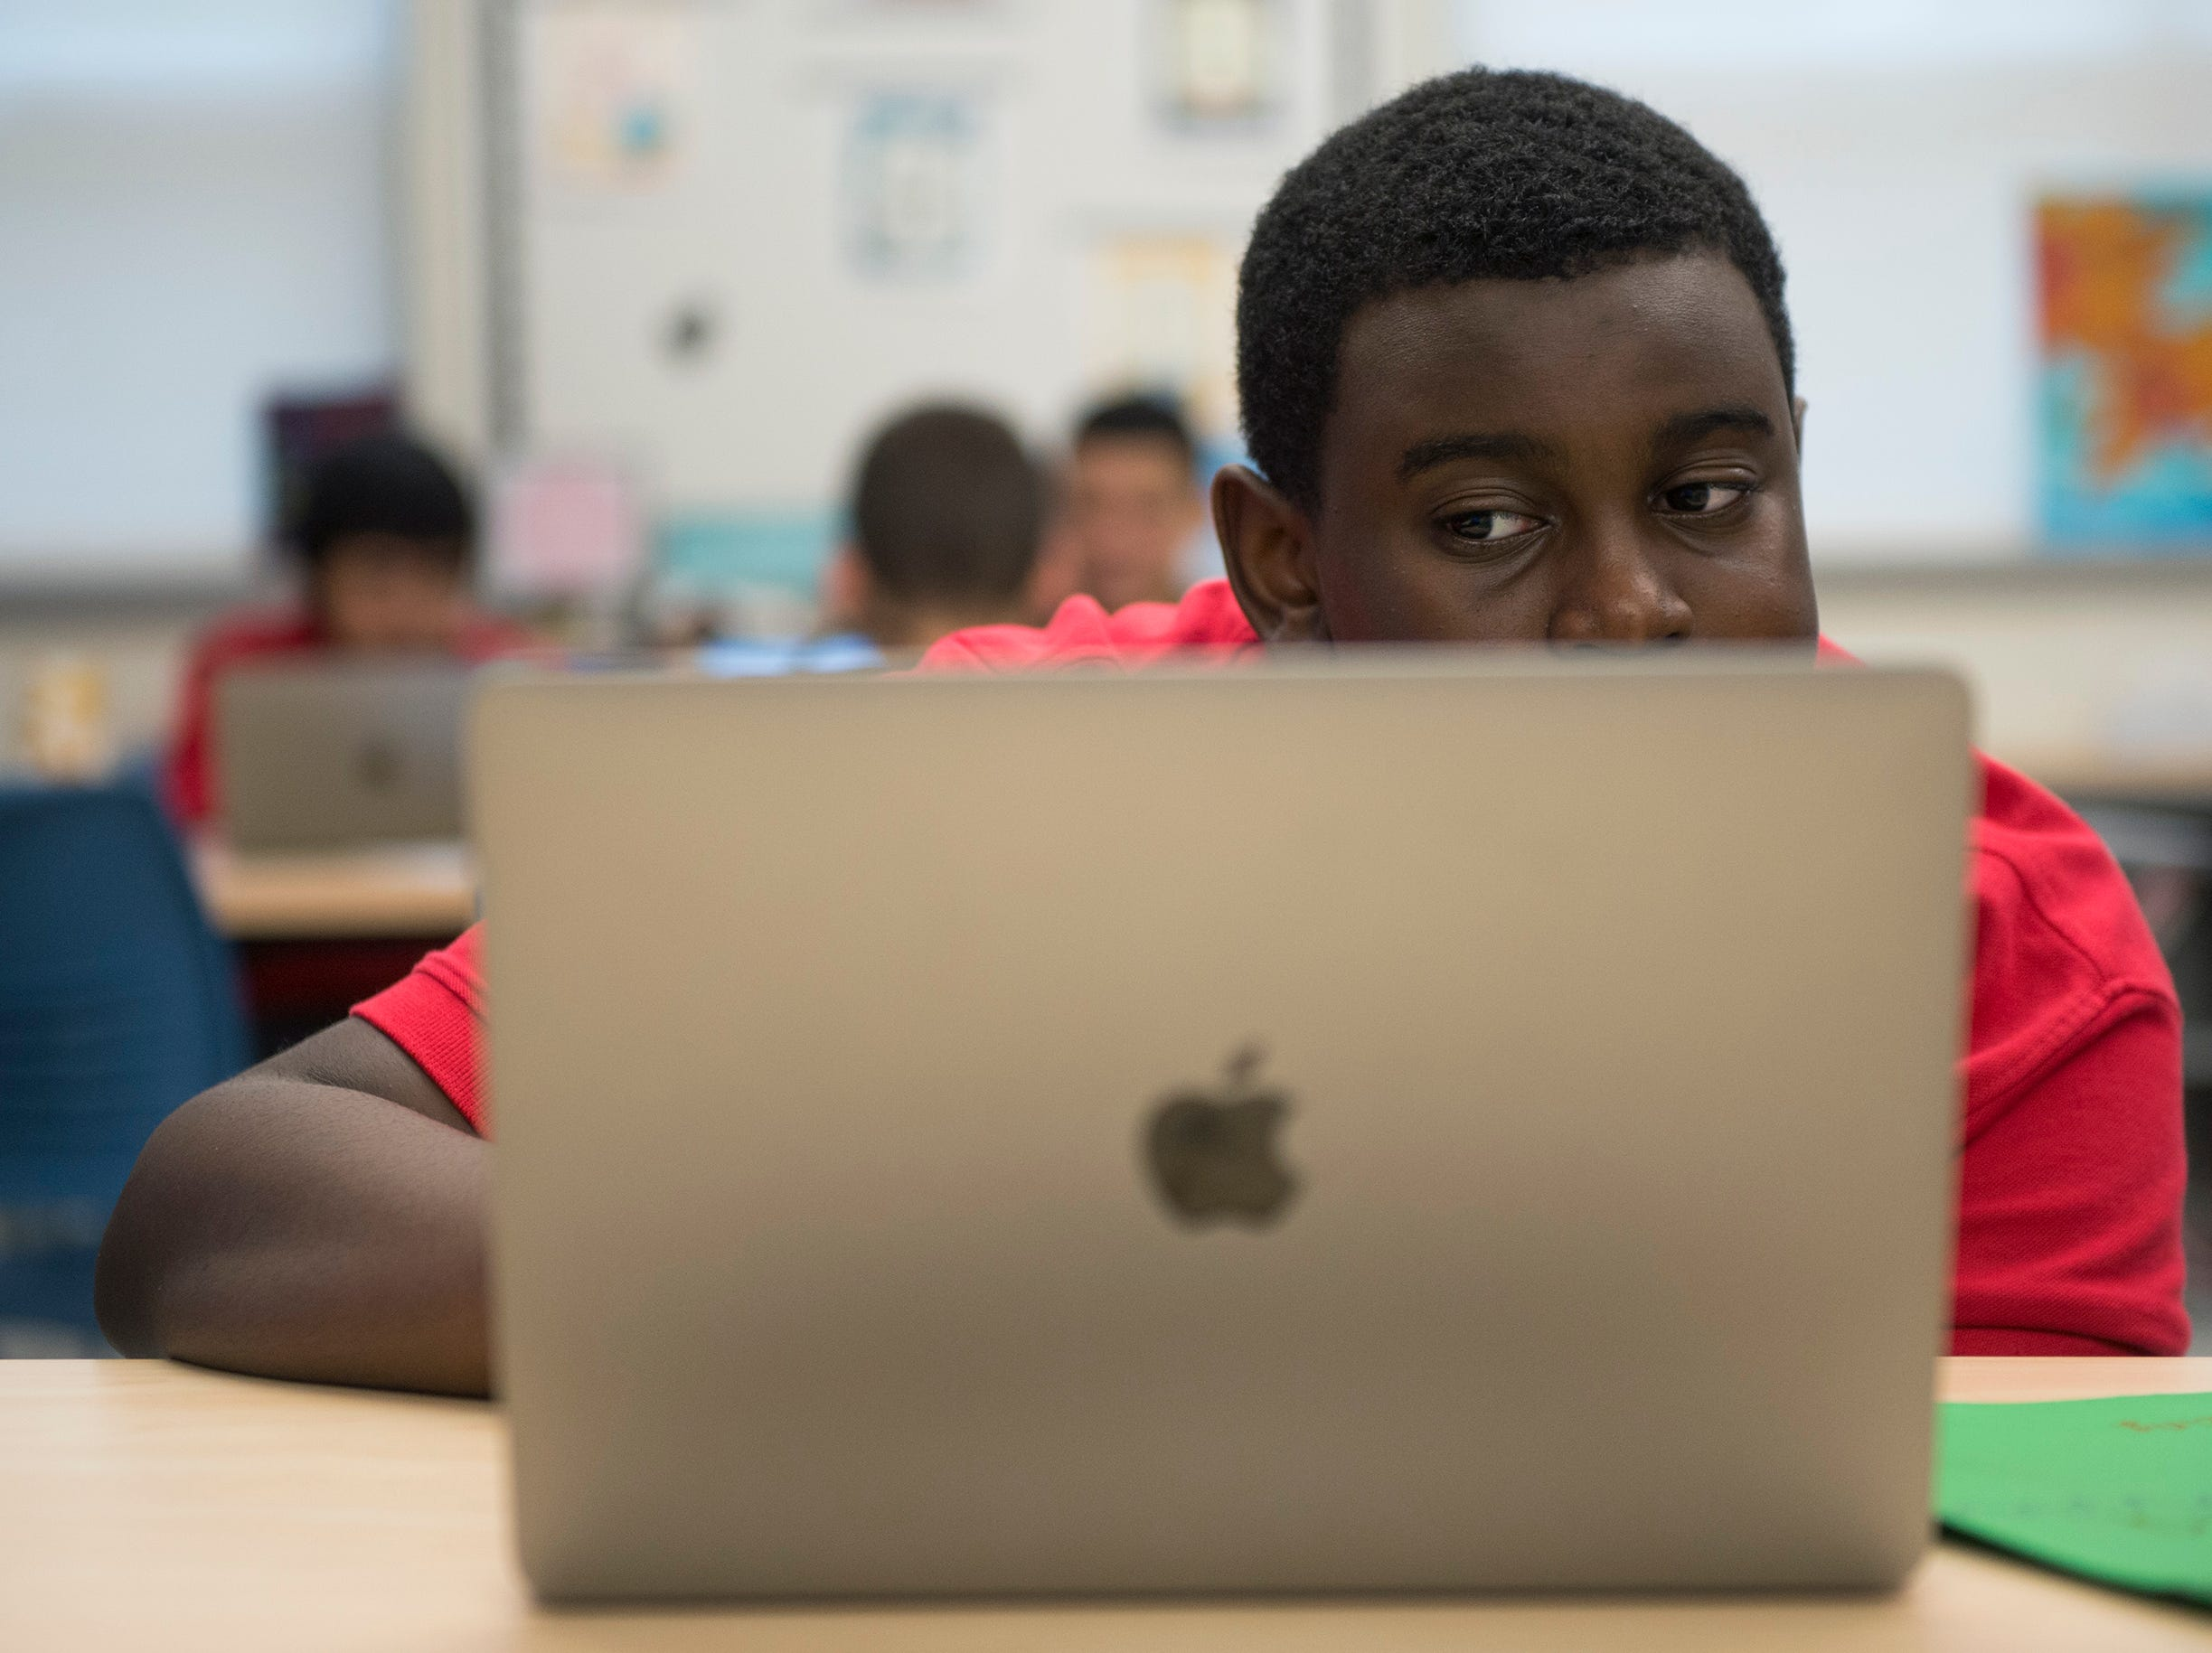 Theo Barclay, 14, works on his Veterans Day project Monday, Nov. 5, 2018 at Lincoln Avenue School in Vineland, N.J. Barclay's father is in the army and currently deployed.